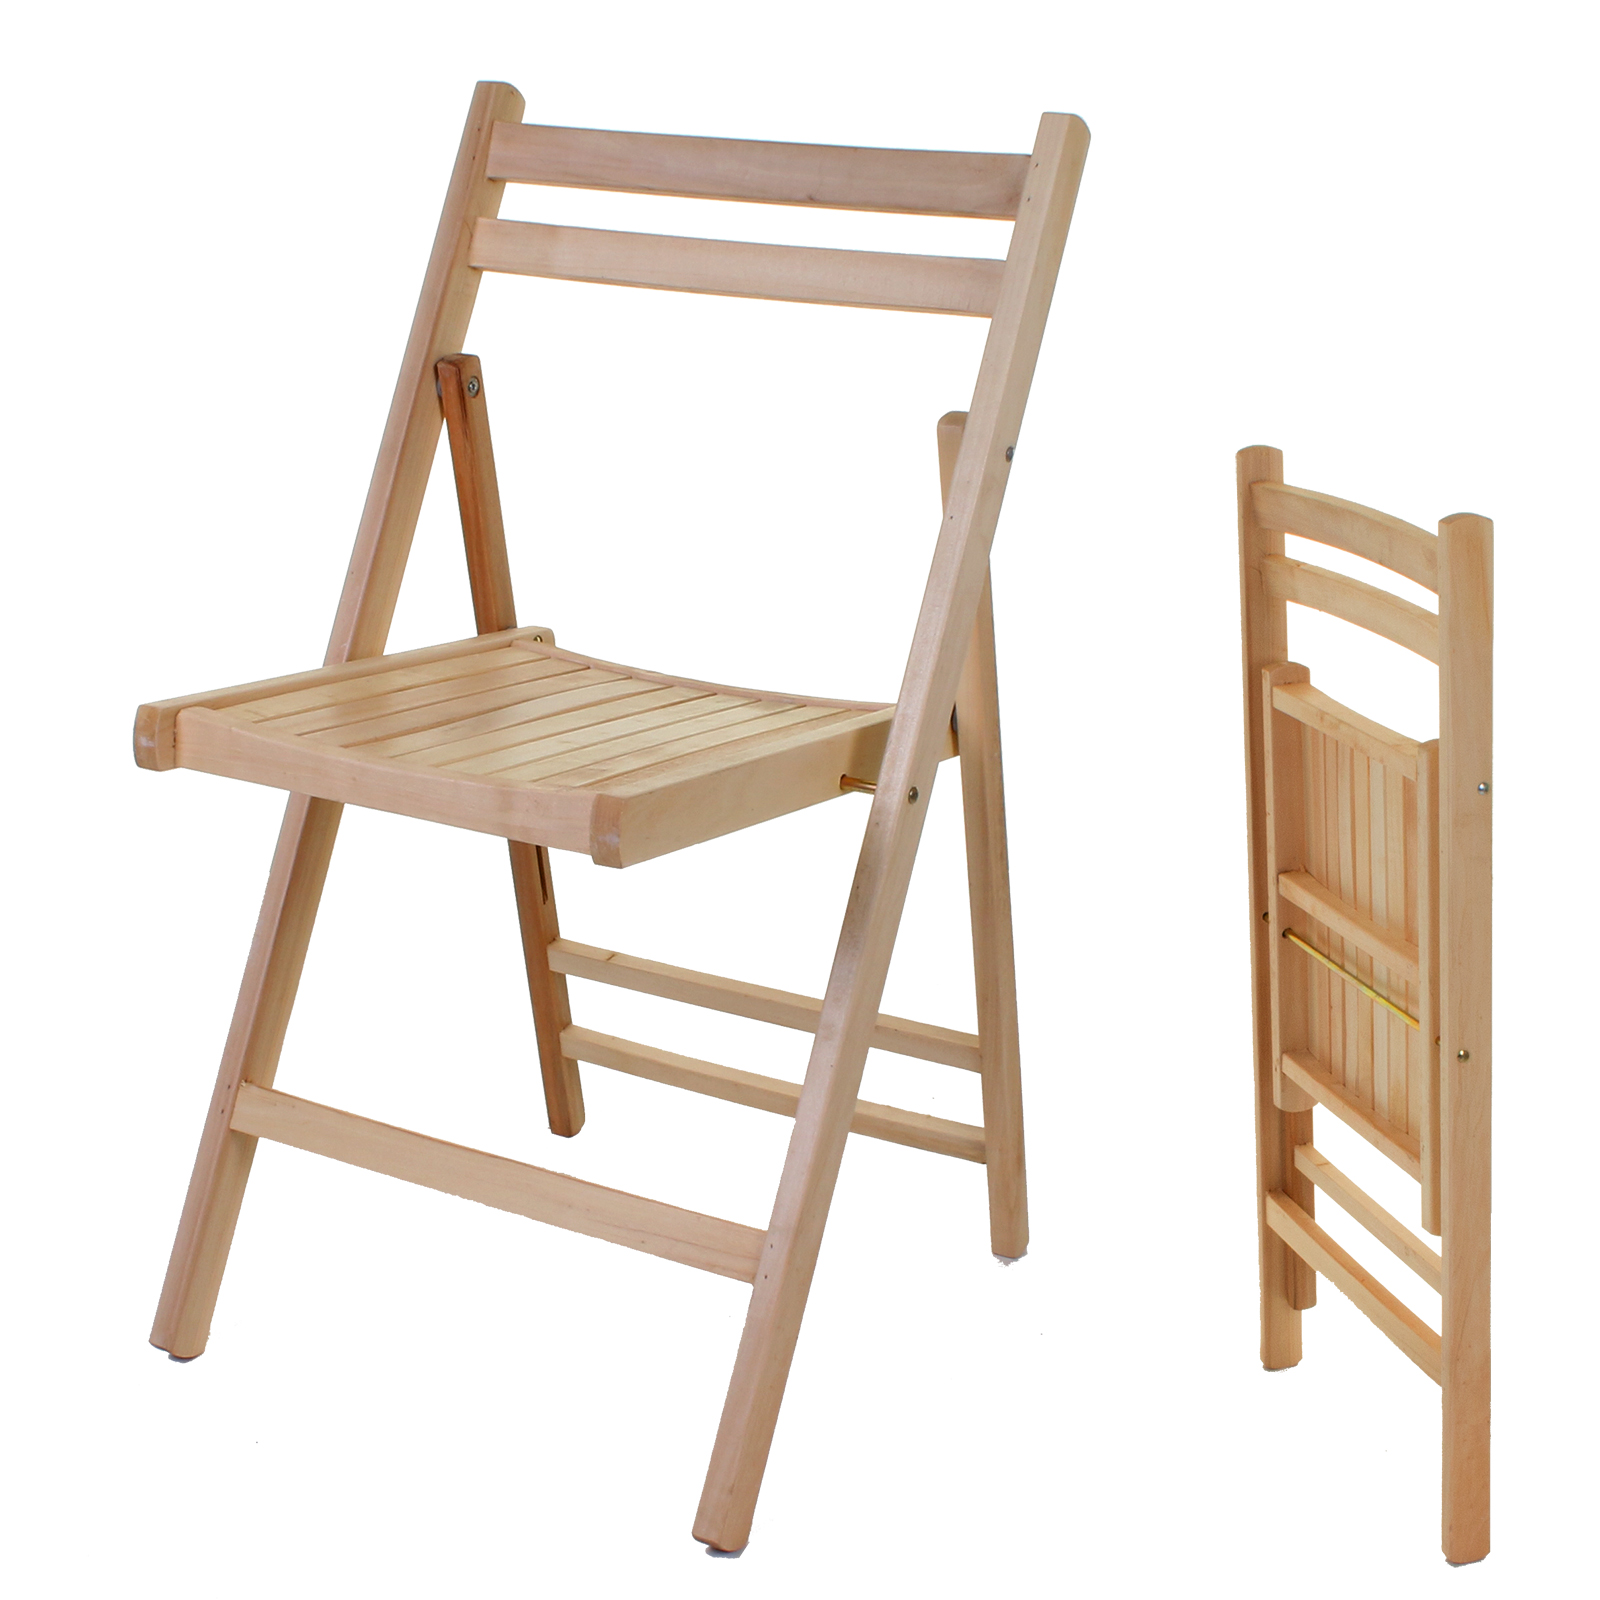 Chair Wooden Wooden Folding Chair Indoor Outdoor Slatted Natural Dining